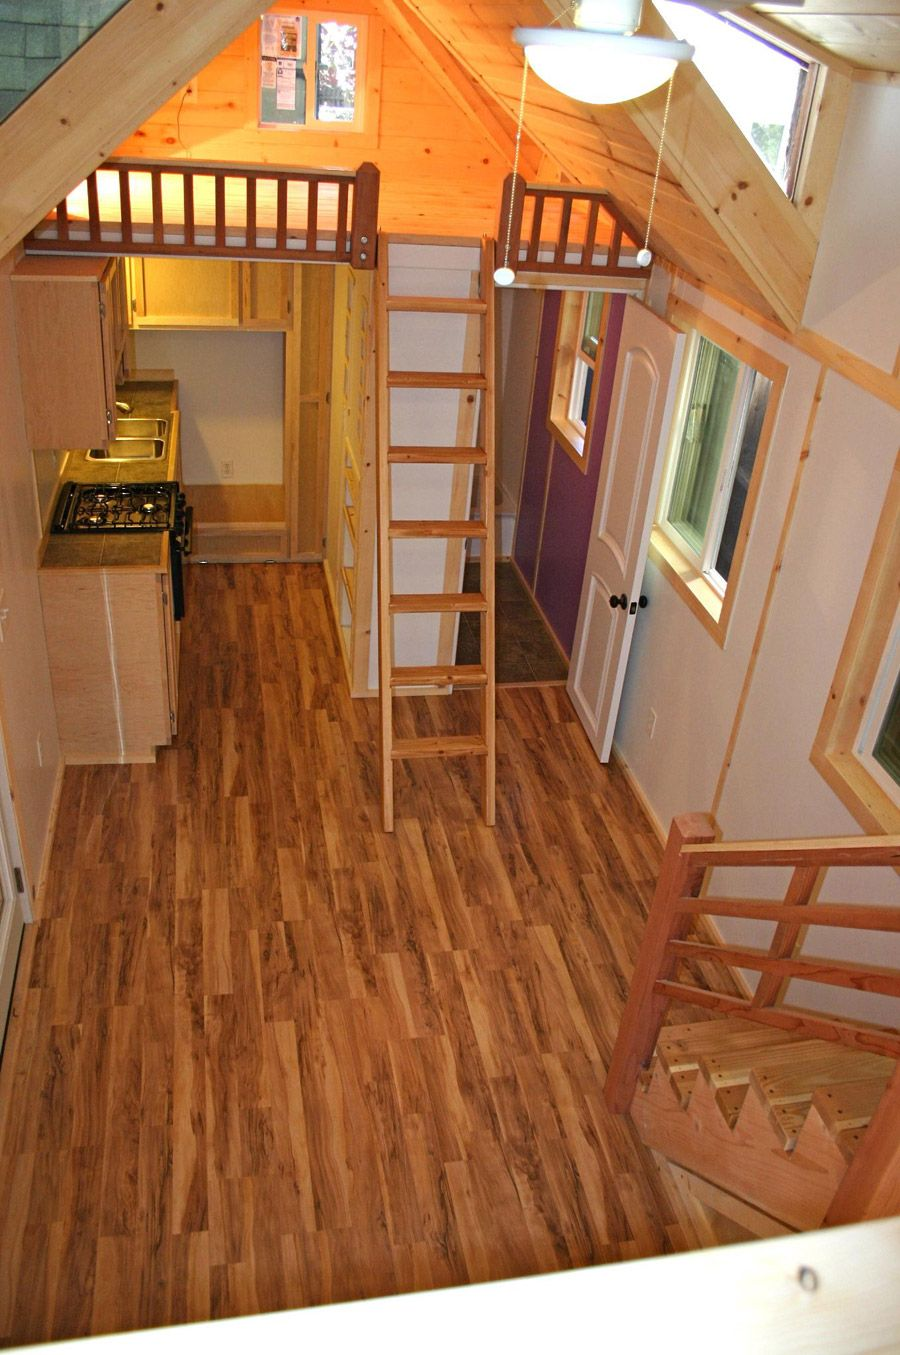 322 sq ft tiny house with two lofts that make it look huuuuuge